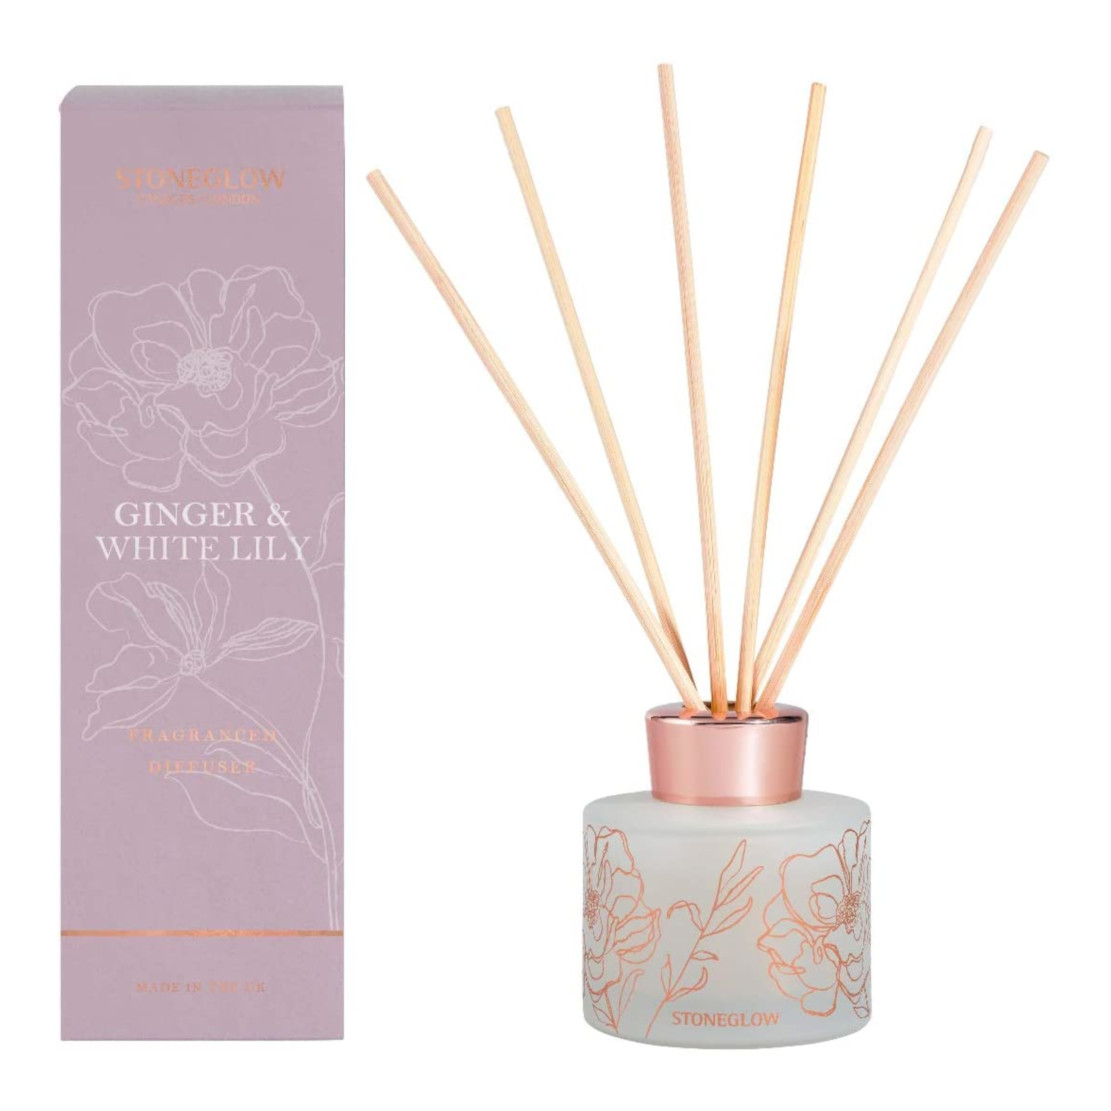 Stoneglow Day Flower Ginger & White Lily Reed Diffuser 120ml